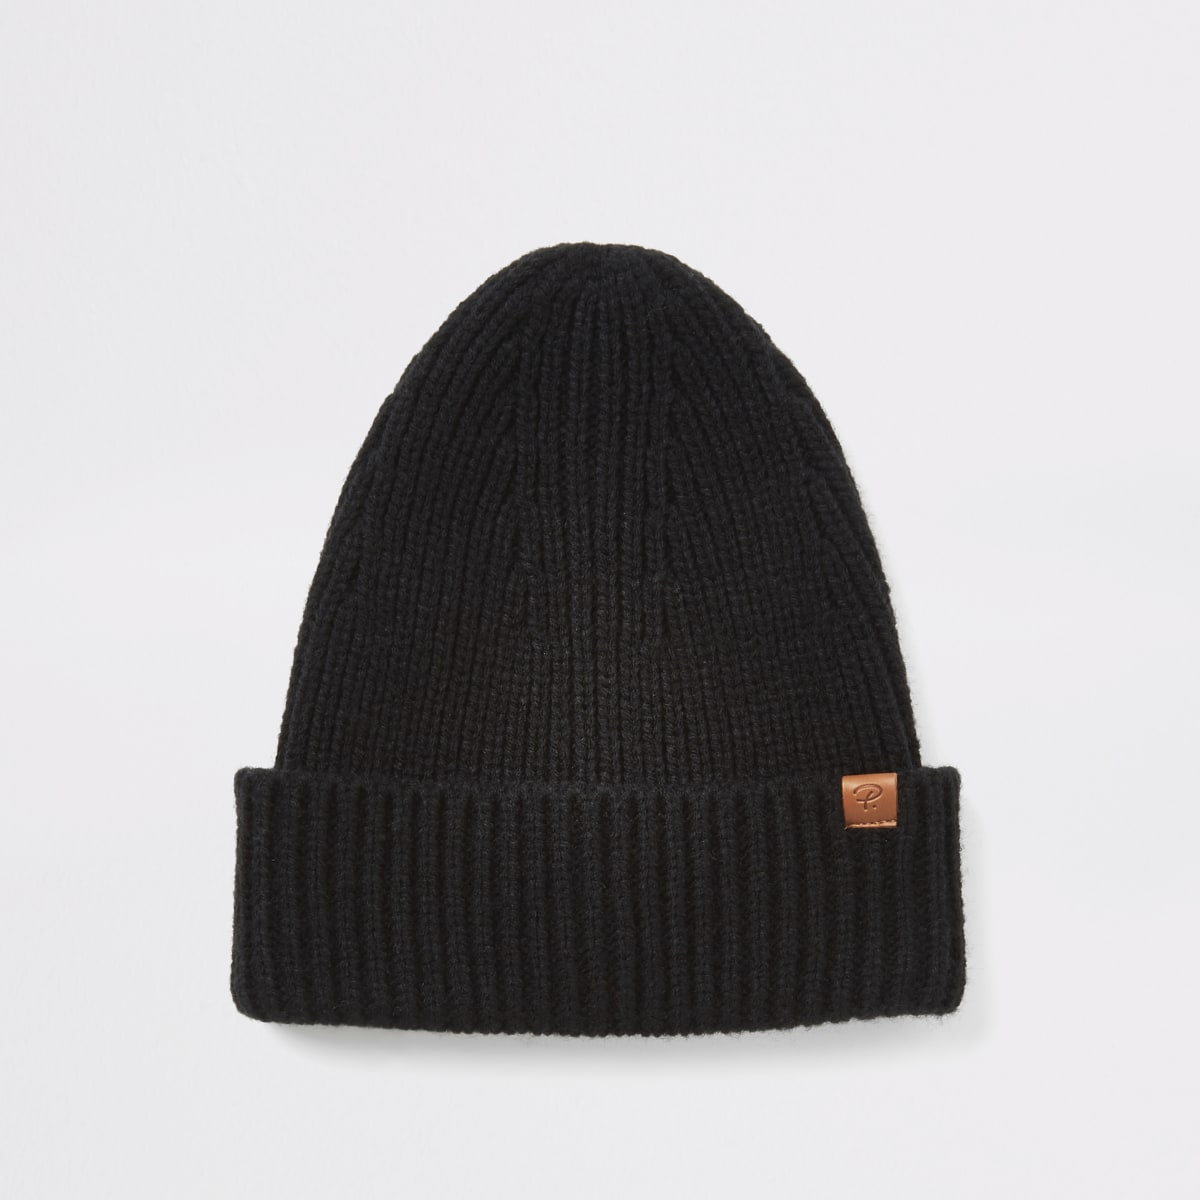 Black fisherman knit beanie hat